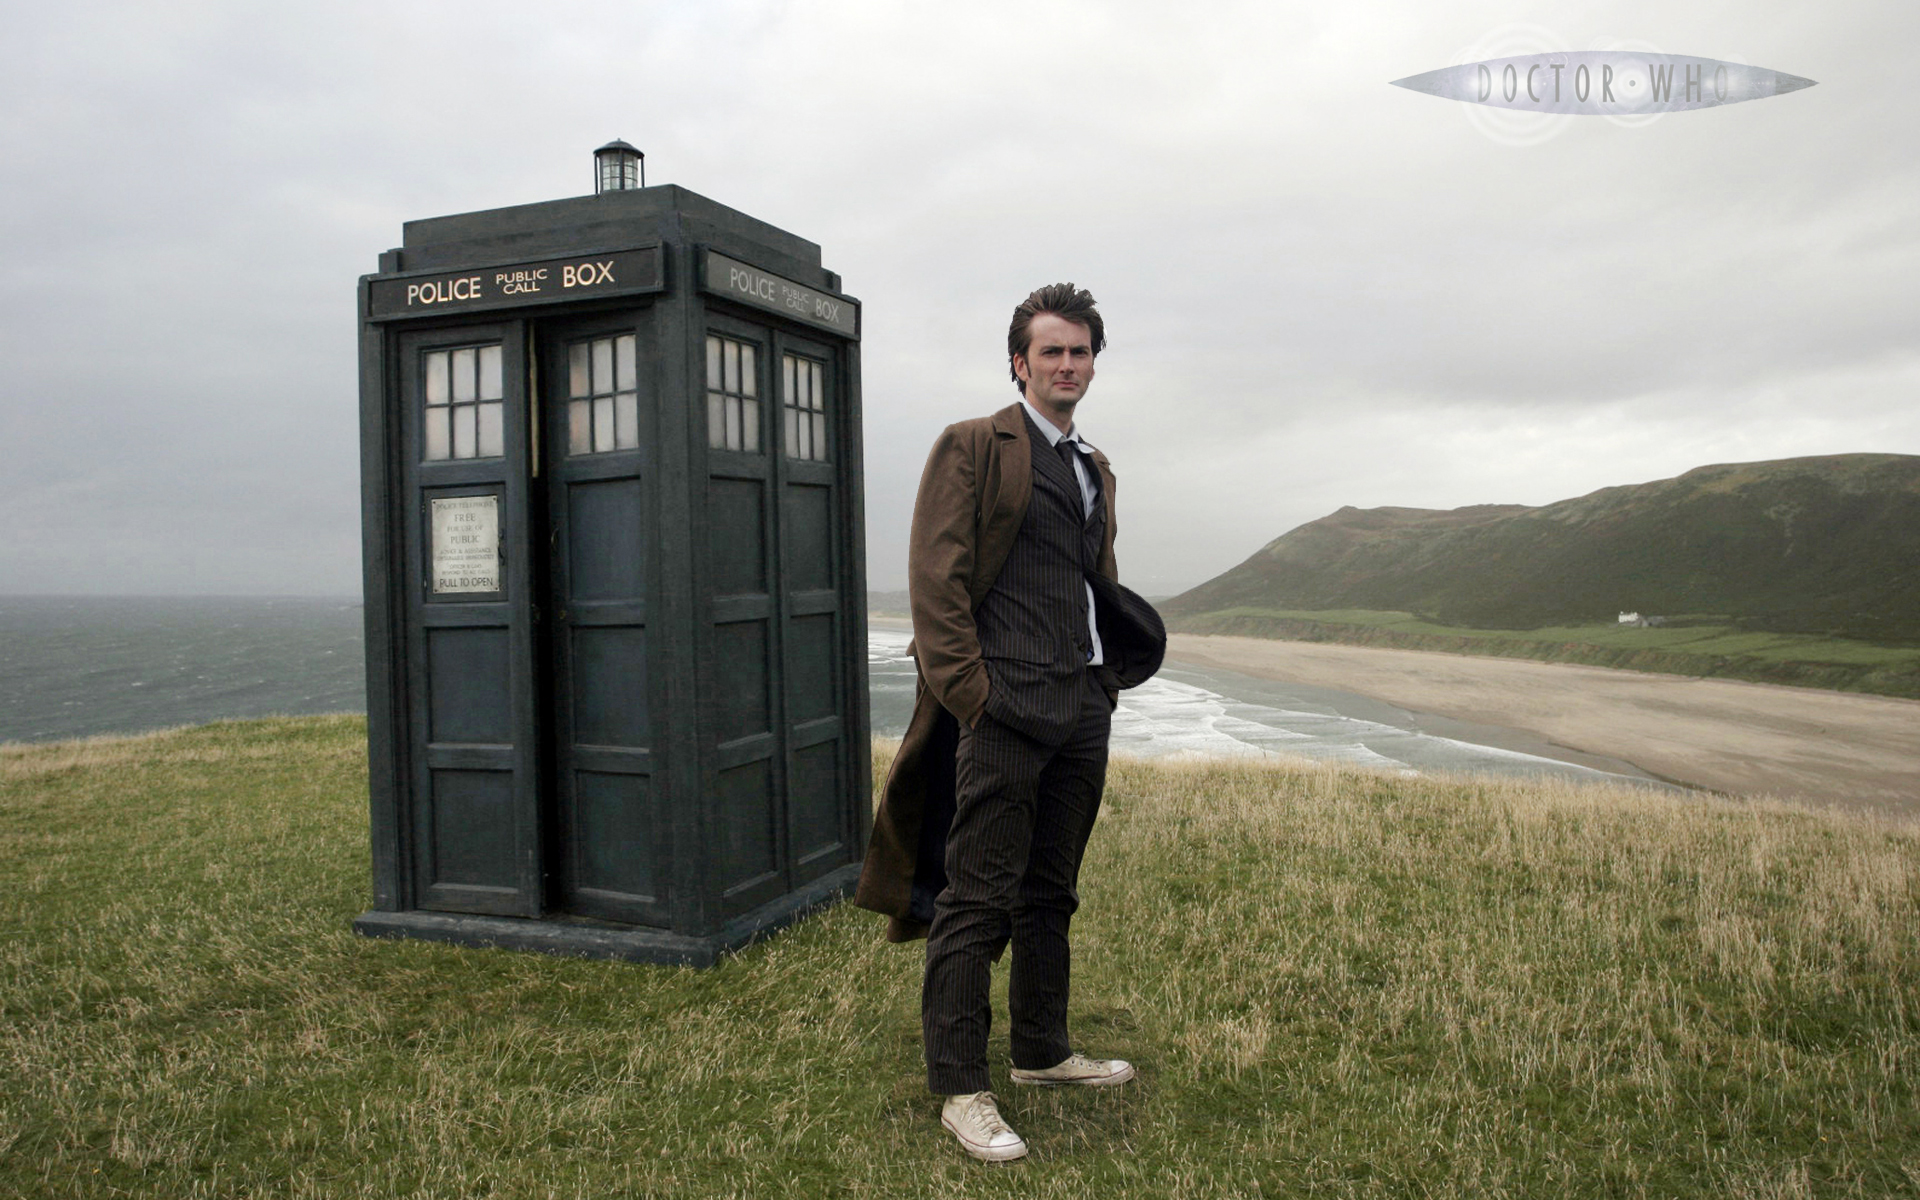 Doctor Who 10th Doctor TARDIS Wallpaper